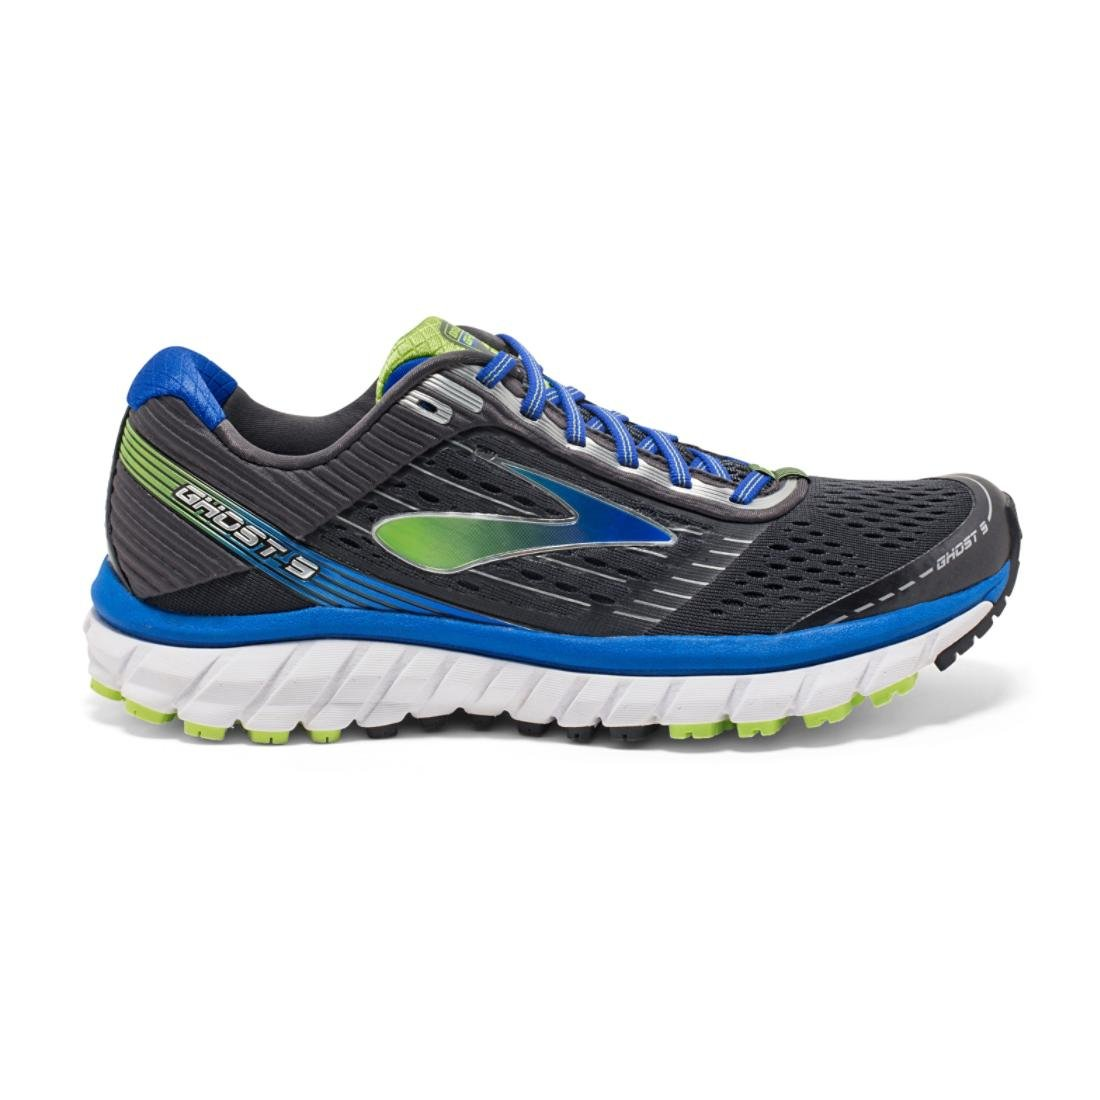 [ブルックス] BROOKS メンズ ランニングシューズ ゴースト9 B017N04D5M 14 EE - Wide|Anthracite/Blue Anthracite/Blue 14 EE - Wide